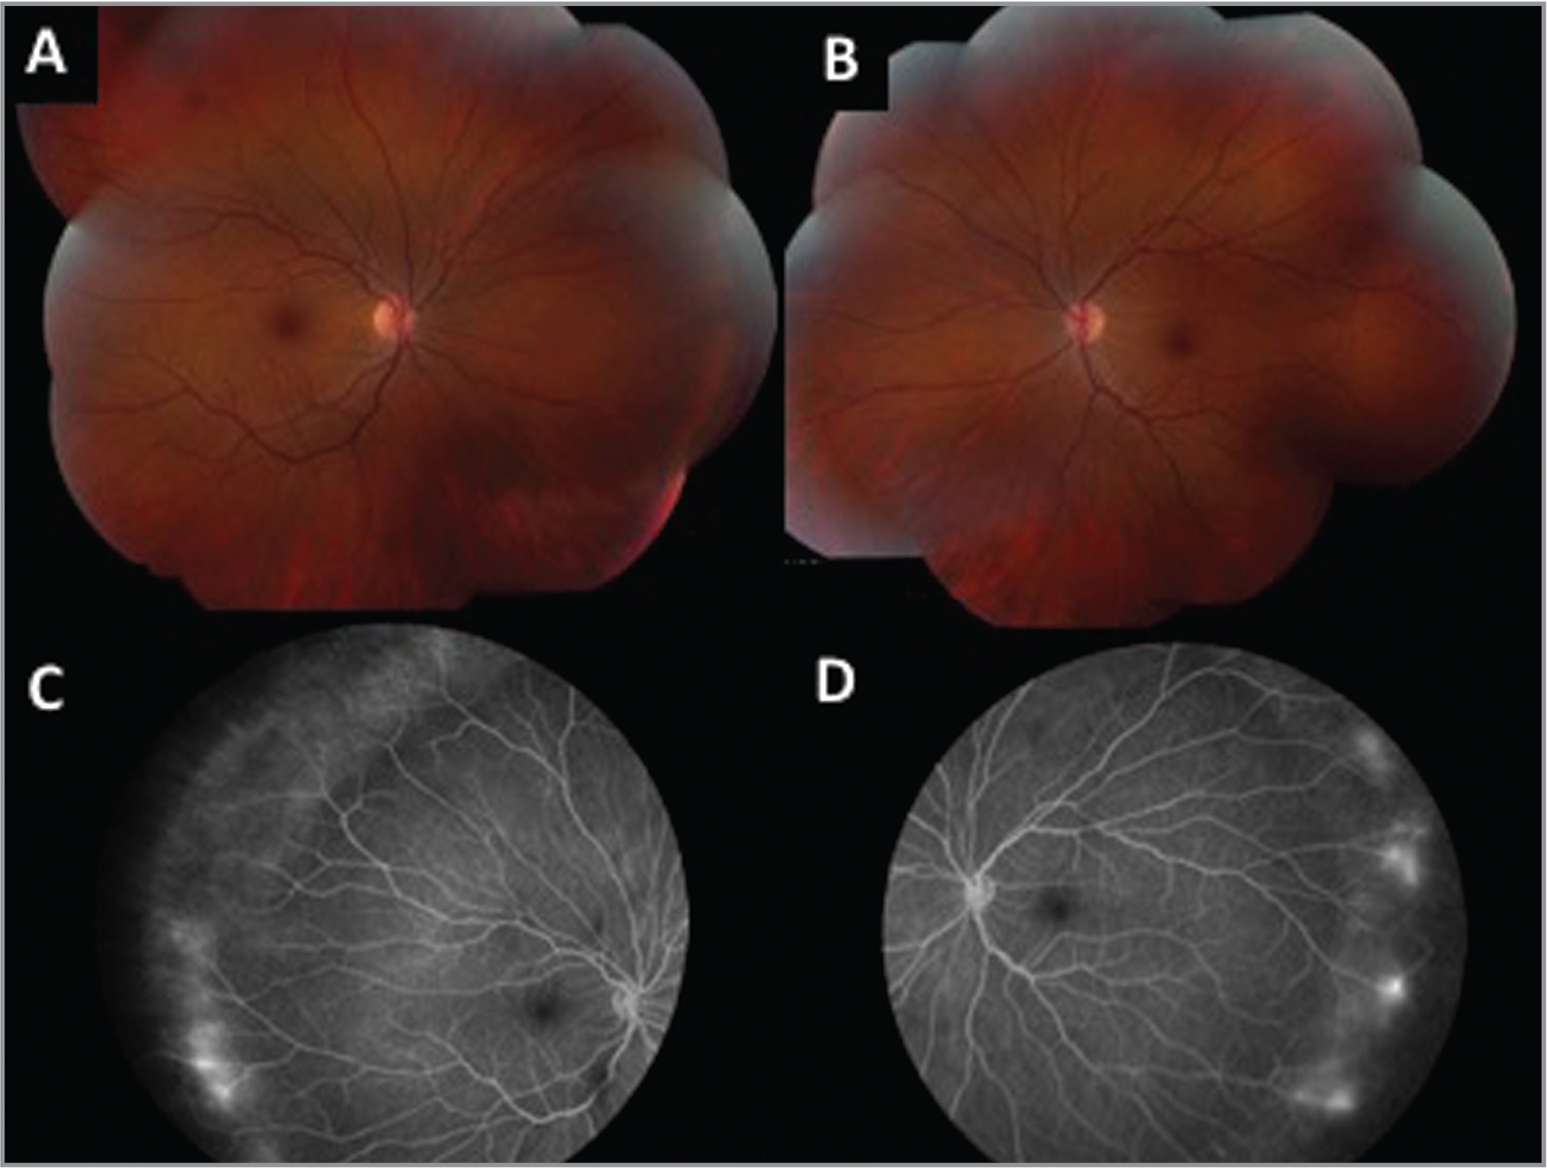 Color fundus images and late phase fluorescein angiography of the probands mother. (A) Right eye: Normal-appearing fundus. (B) Left eye: Evidence of vascular straightening. (C) Right eye: Peripheral leakage and nonperfusion. (D) Left eye: Peripheral leakage and nonperfusion.